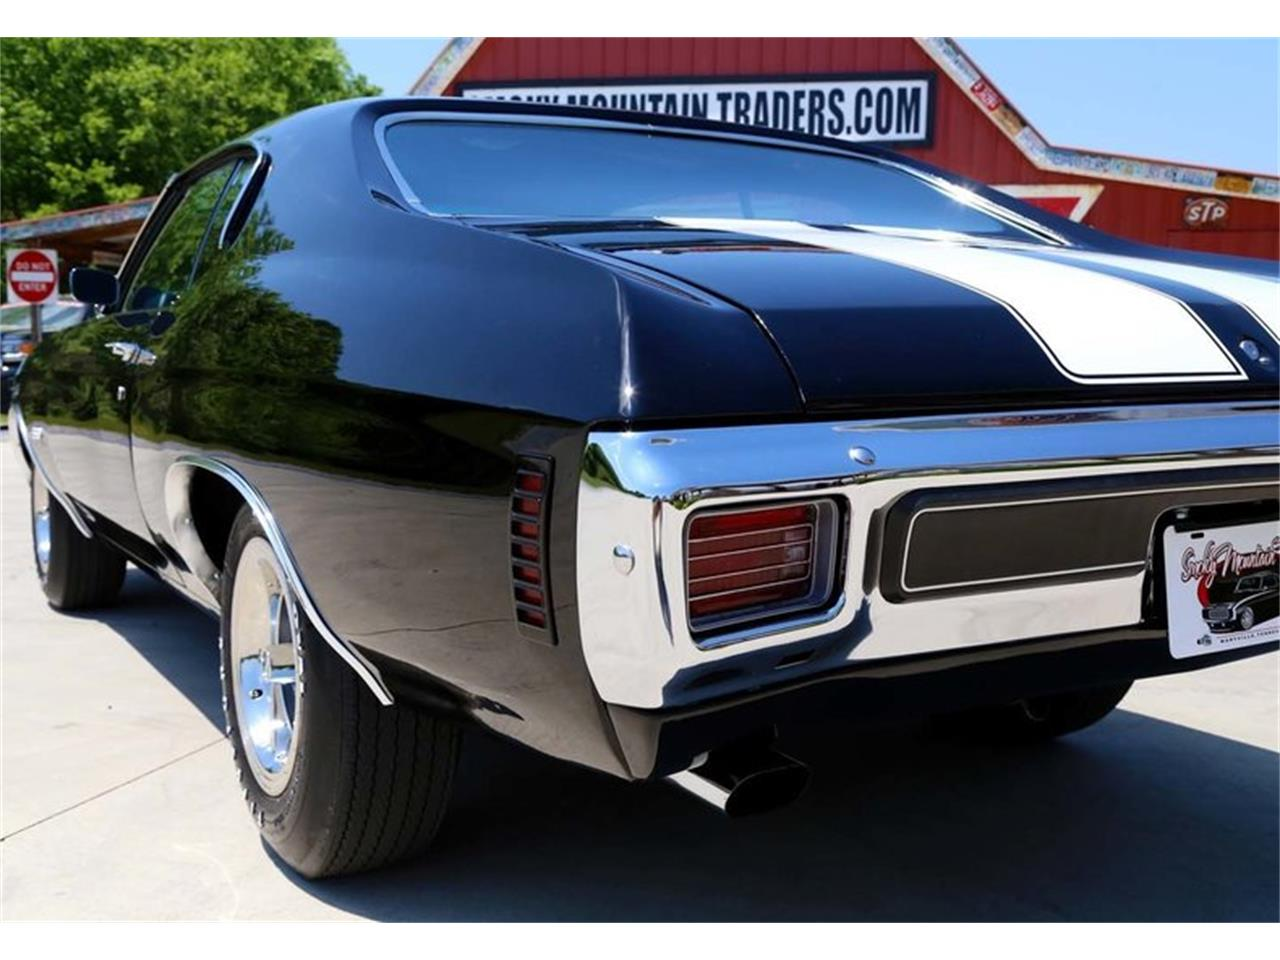 Large Picture of Classic '70 Chevrolet Chevelle located in Tennessee Offered by Smoky Mountain Traders - OH0R